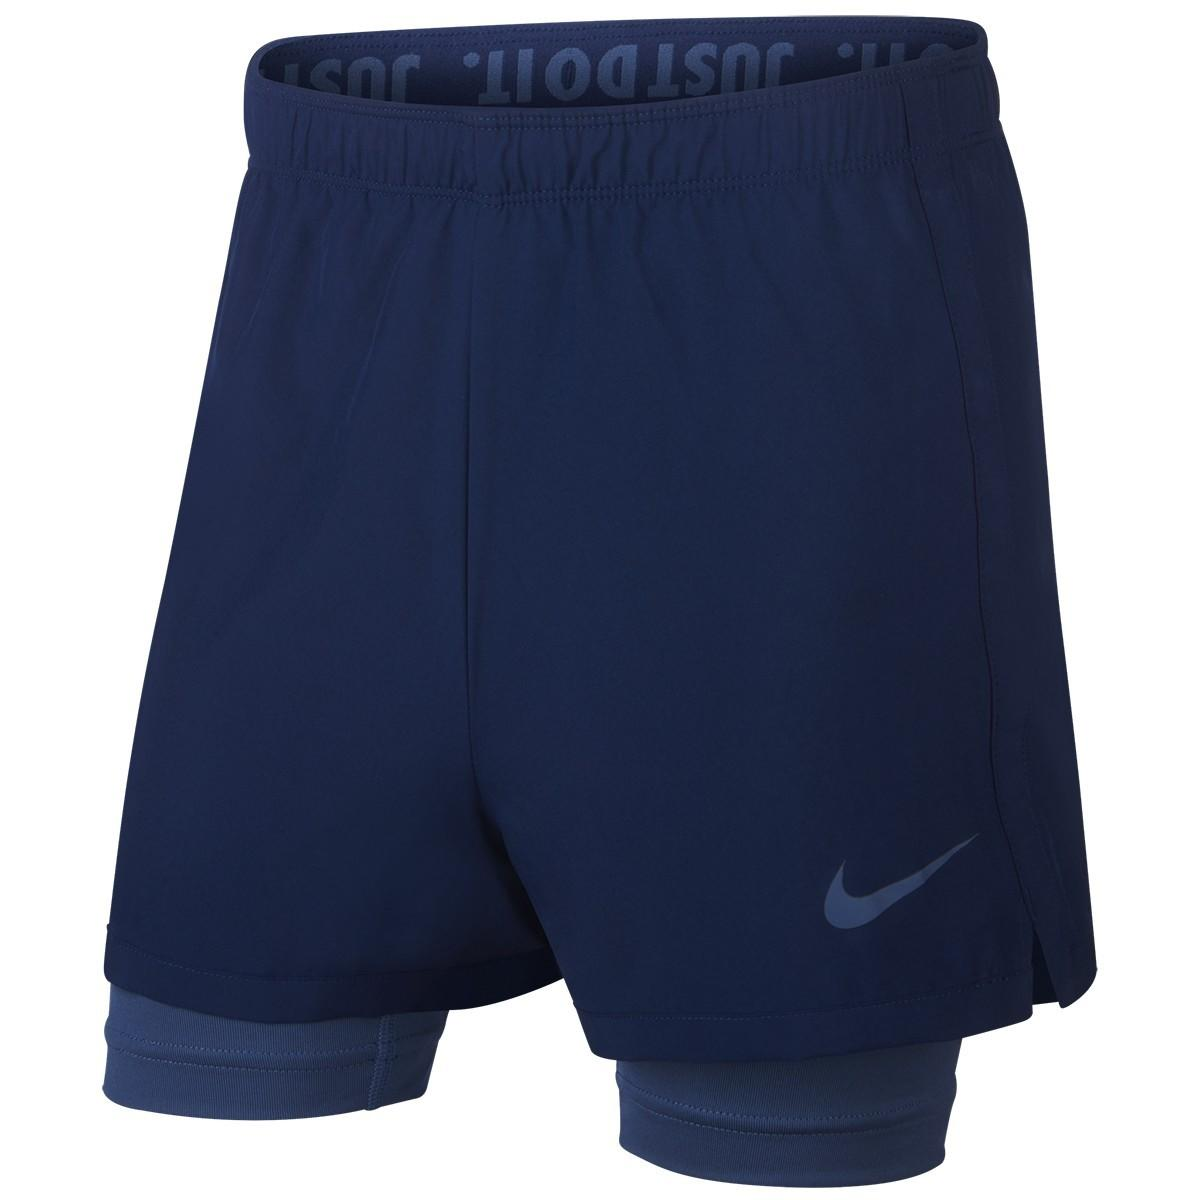 Теннисные шорты детские Nike Dry 2in1 Short Girls blue void/mystic navy